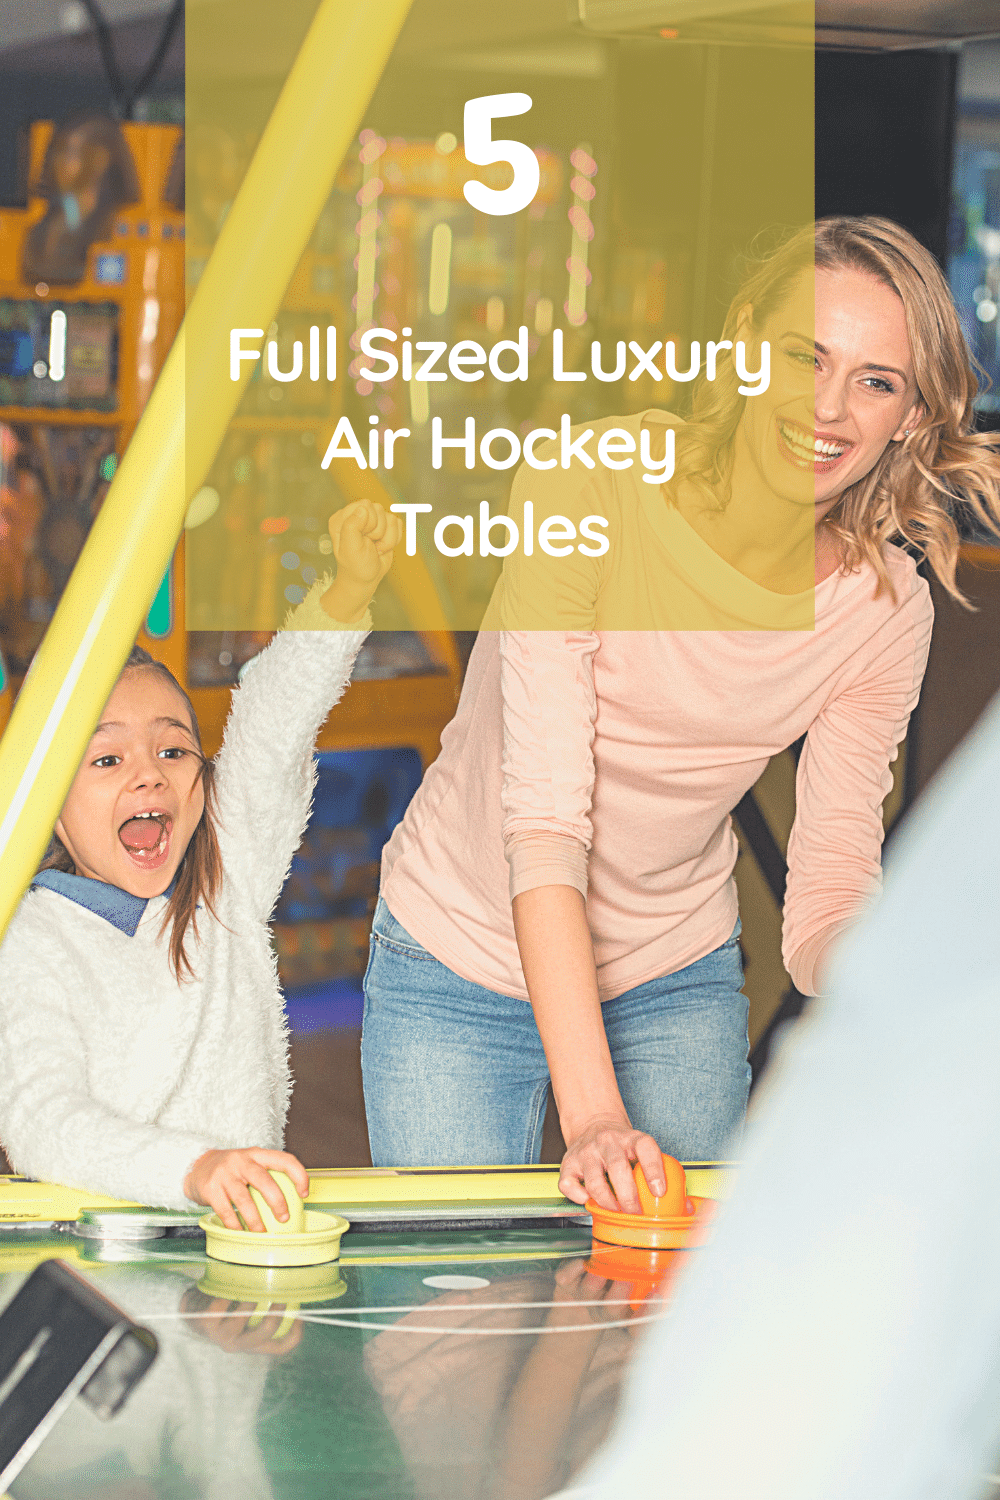 5 Full Sized Luxury Air Hockey Tables For Pro Play At Home In 2020 Air Hockey Air Hockey Tables Hockey